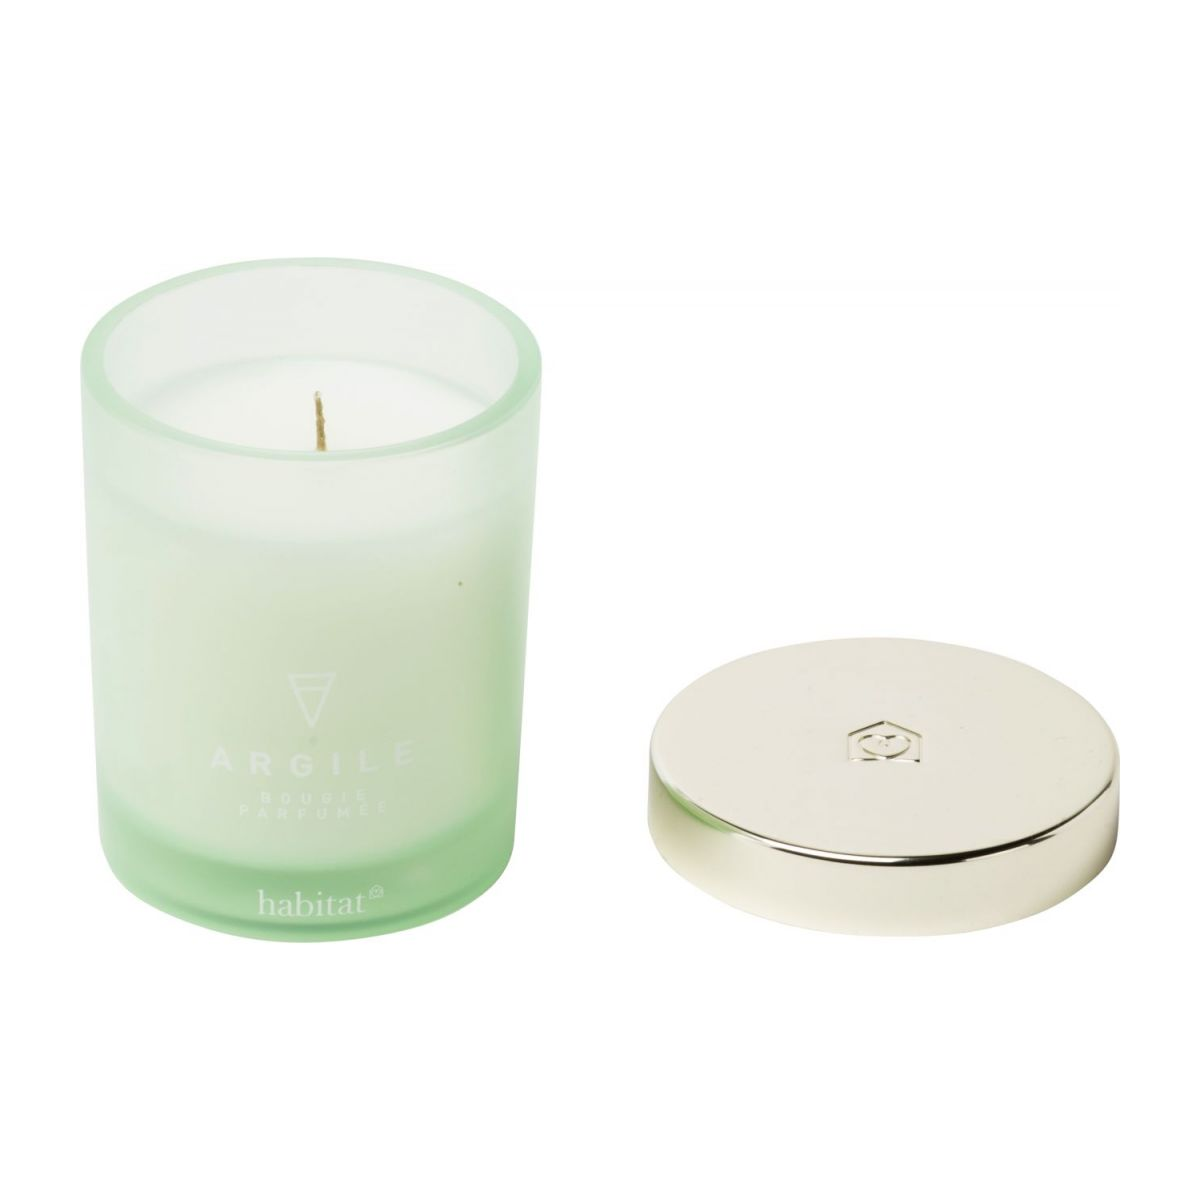 Argile small scented candle  n°2